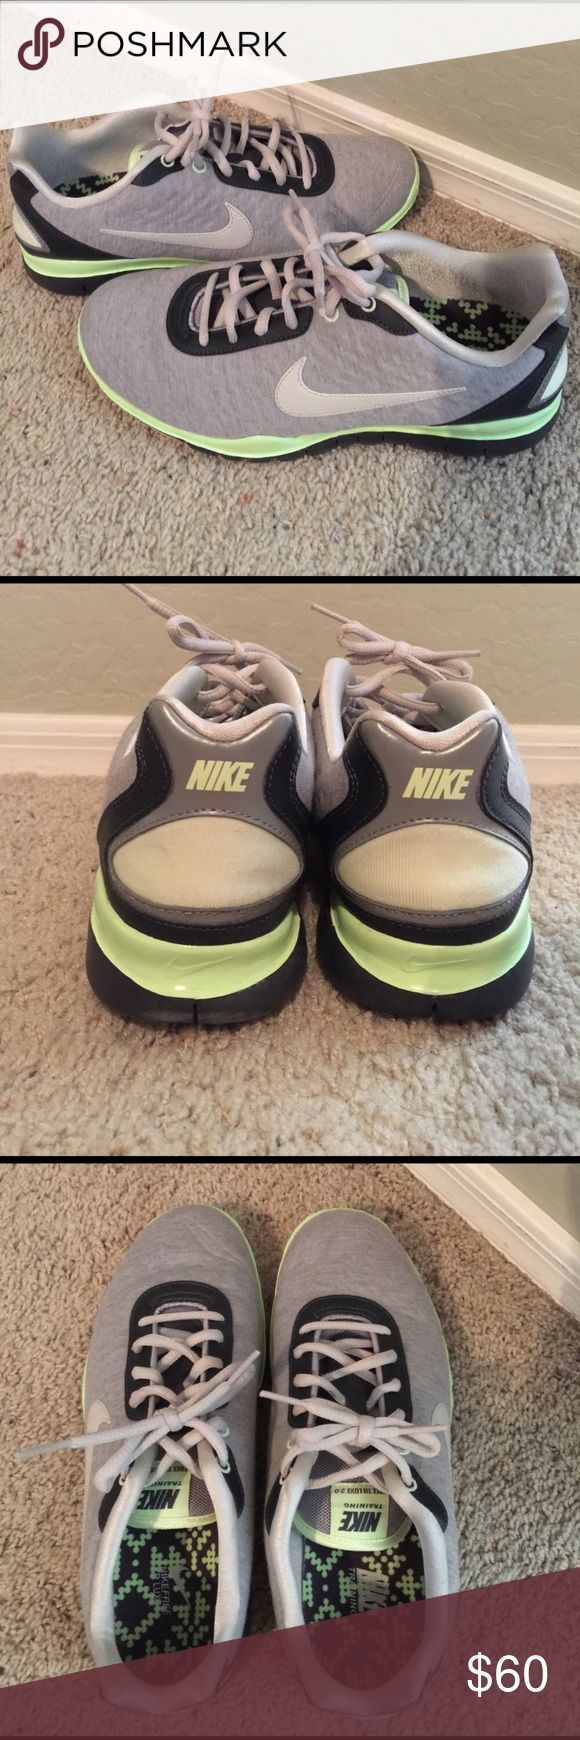 Nike Free Run TR Lux 2.0 Almost like new, Nike Free Runs in a gray/light green color. Only worn 3x, never ran in them. No shoe box. Size 8.5. Nike Shoes Sneakers